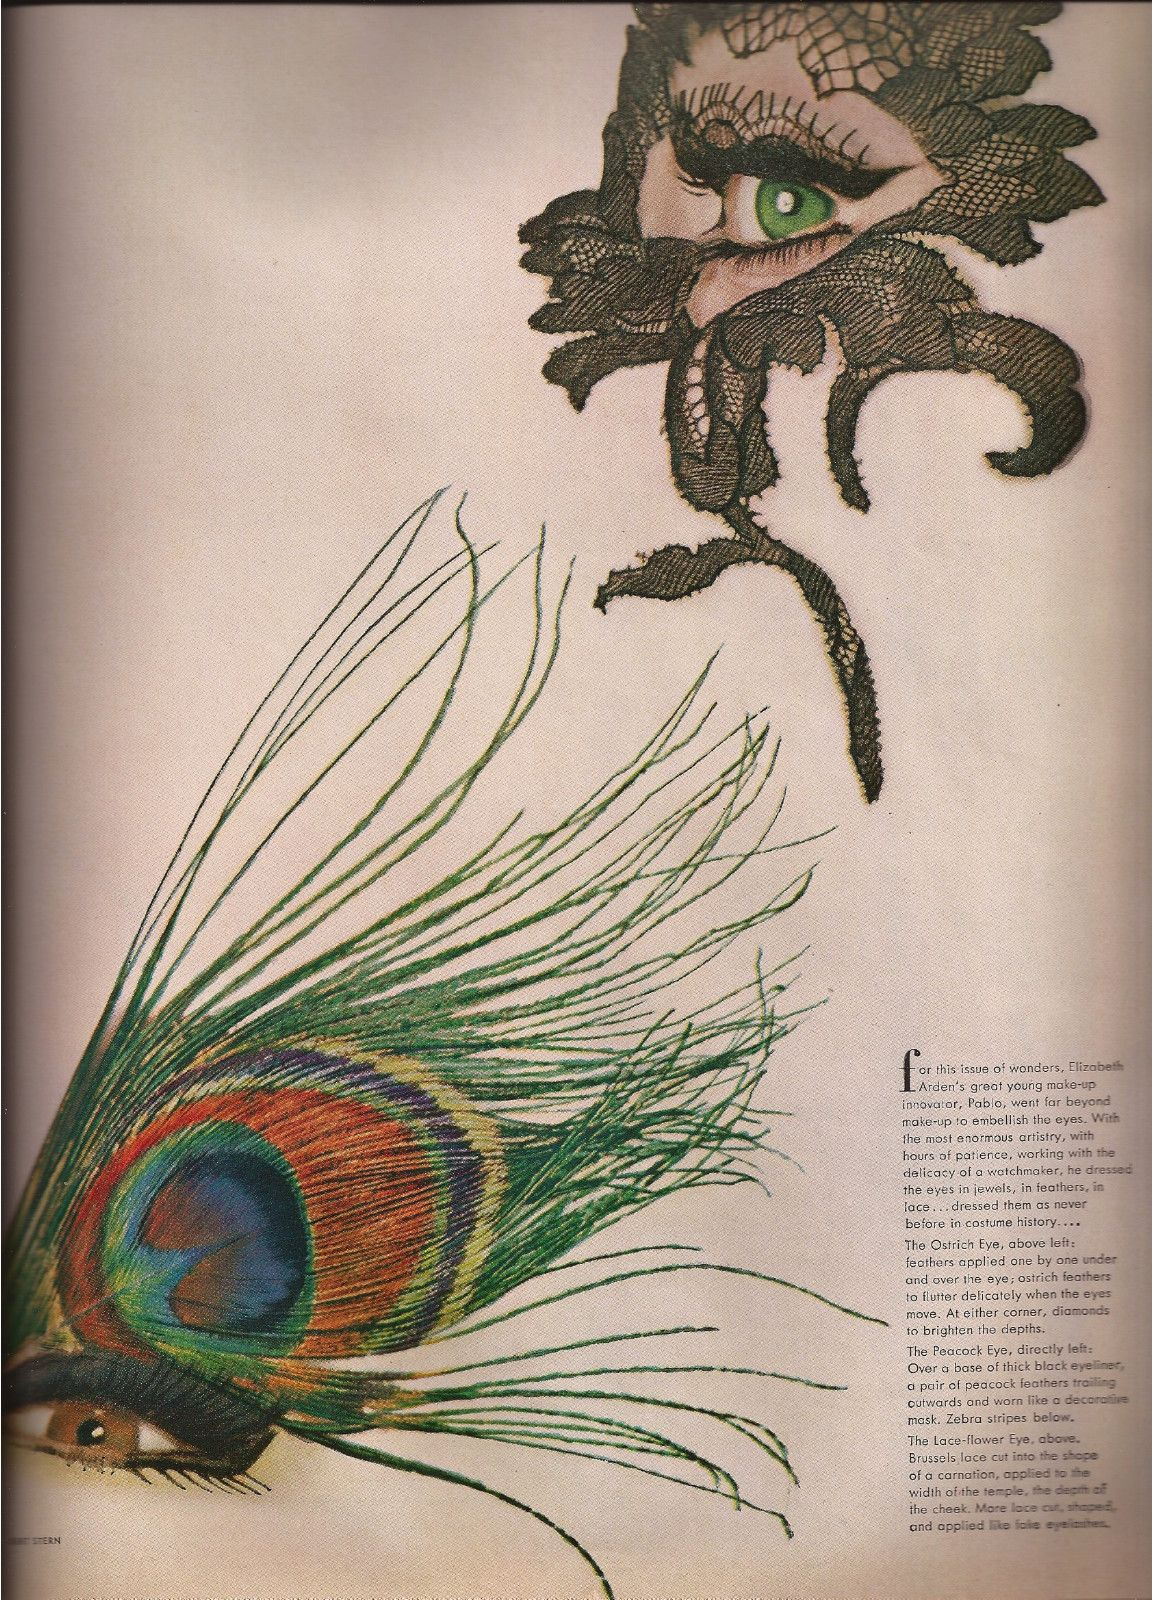 Vogue December 1964 Vogue, Henry miller, May flowers